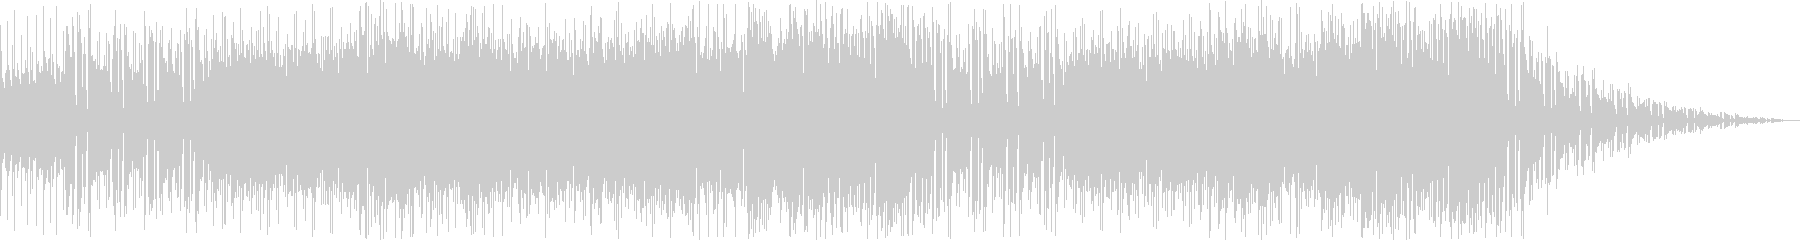 Pop and friendly information songs's unreproduced waveform